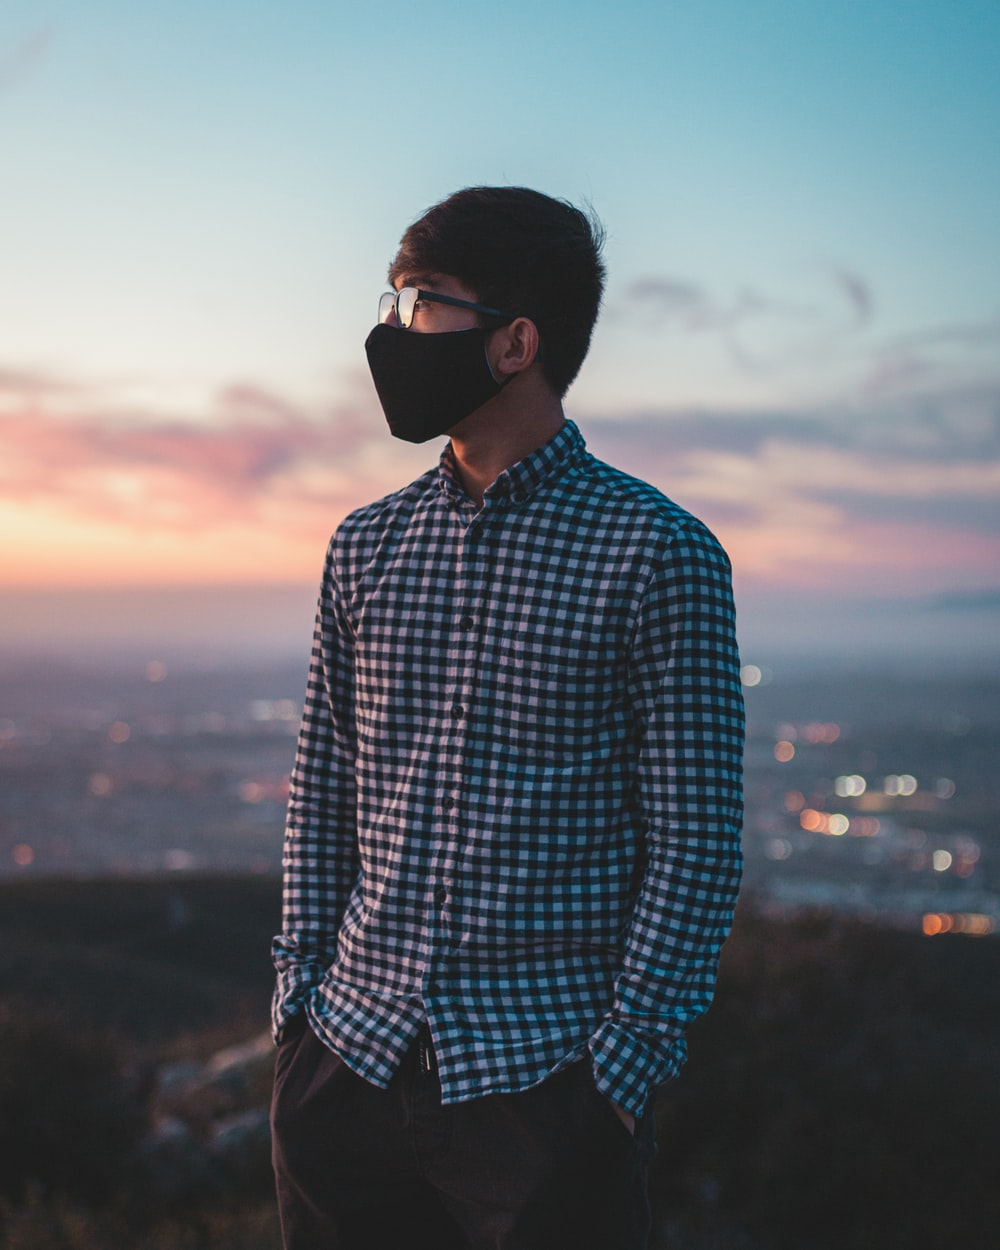 man in blue and white checkered dress shirt wearing black sunglasses during sunset